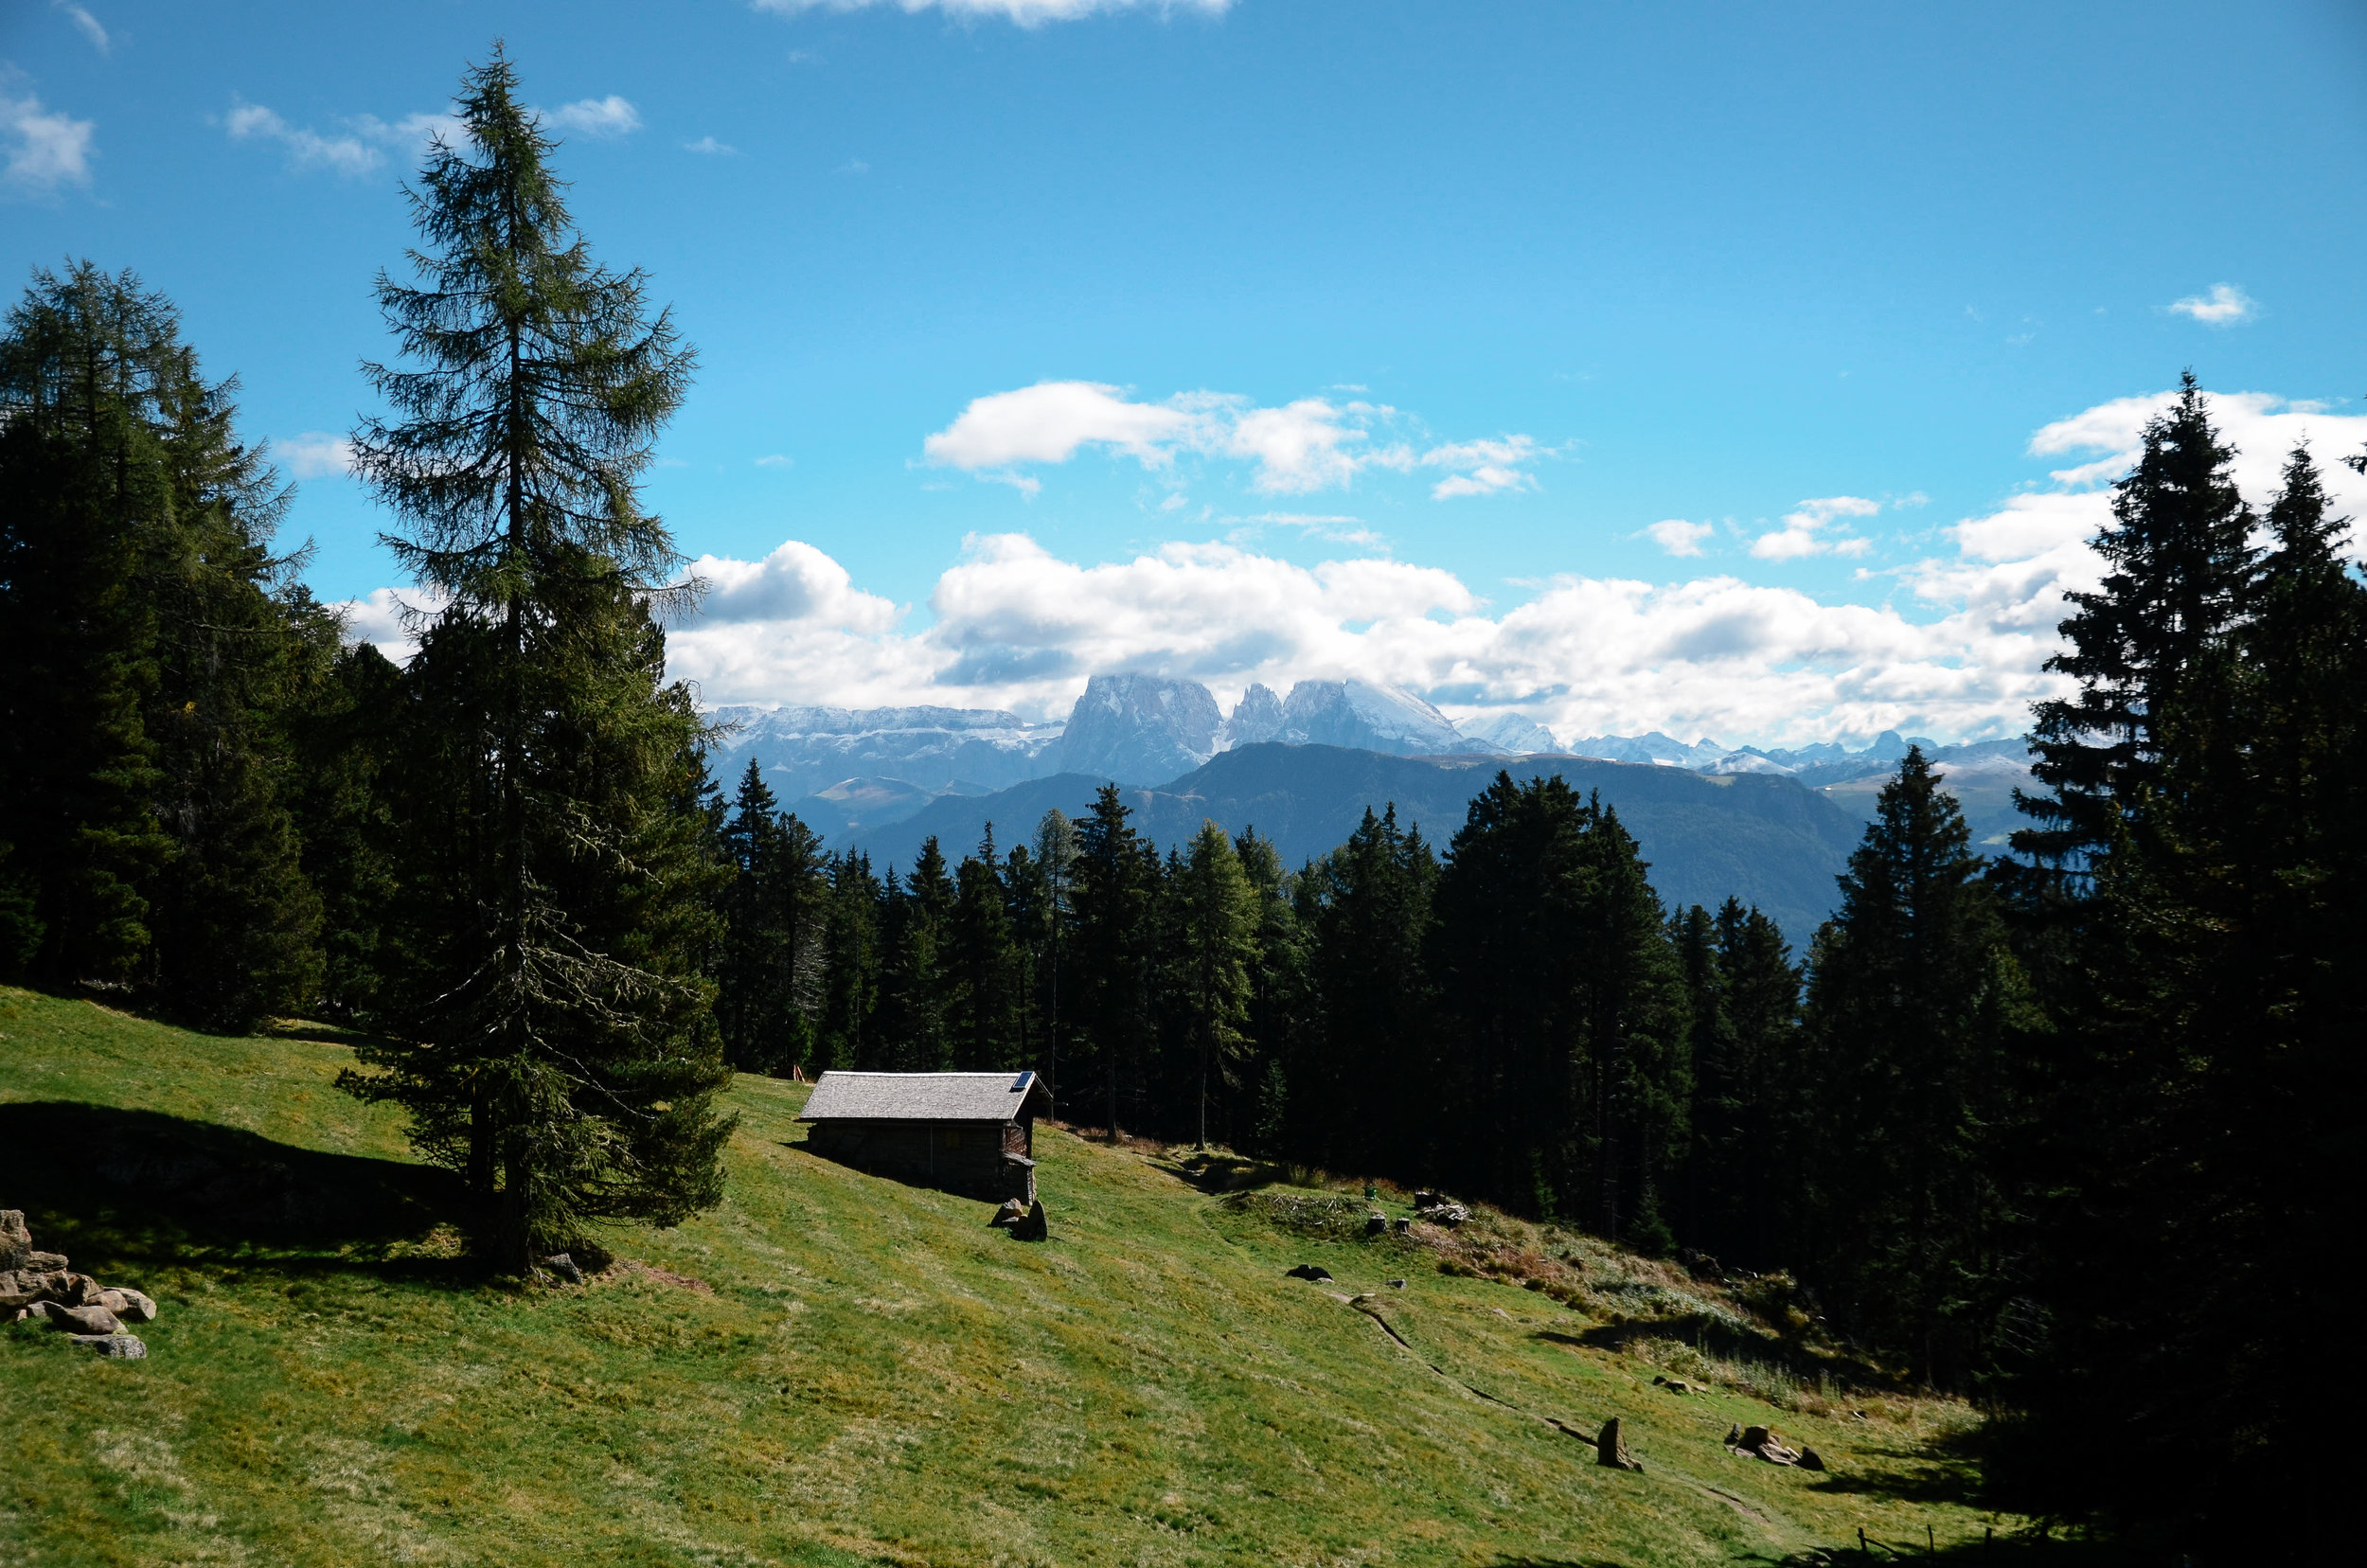 dolomites-why-the-italian-alps-should-be-your-next-mountain-adventure- travel-blog-32.jpg